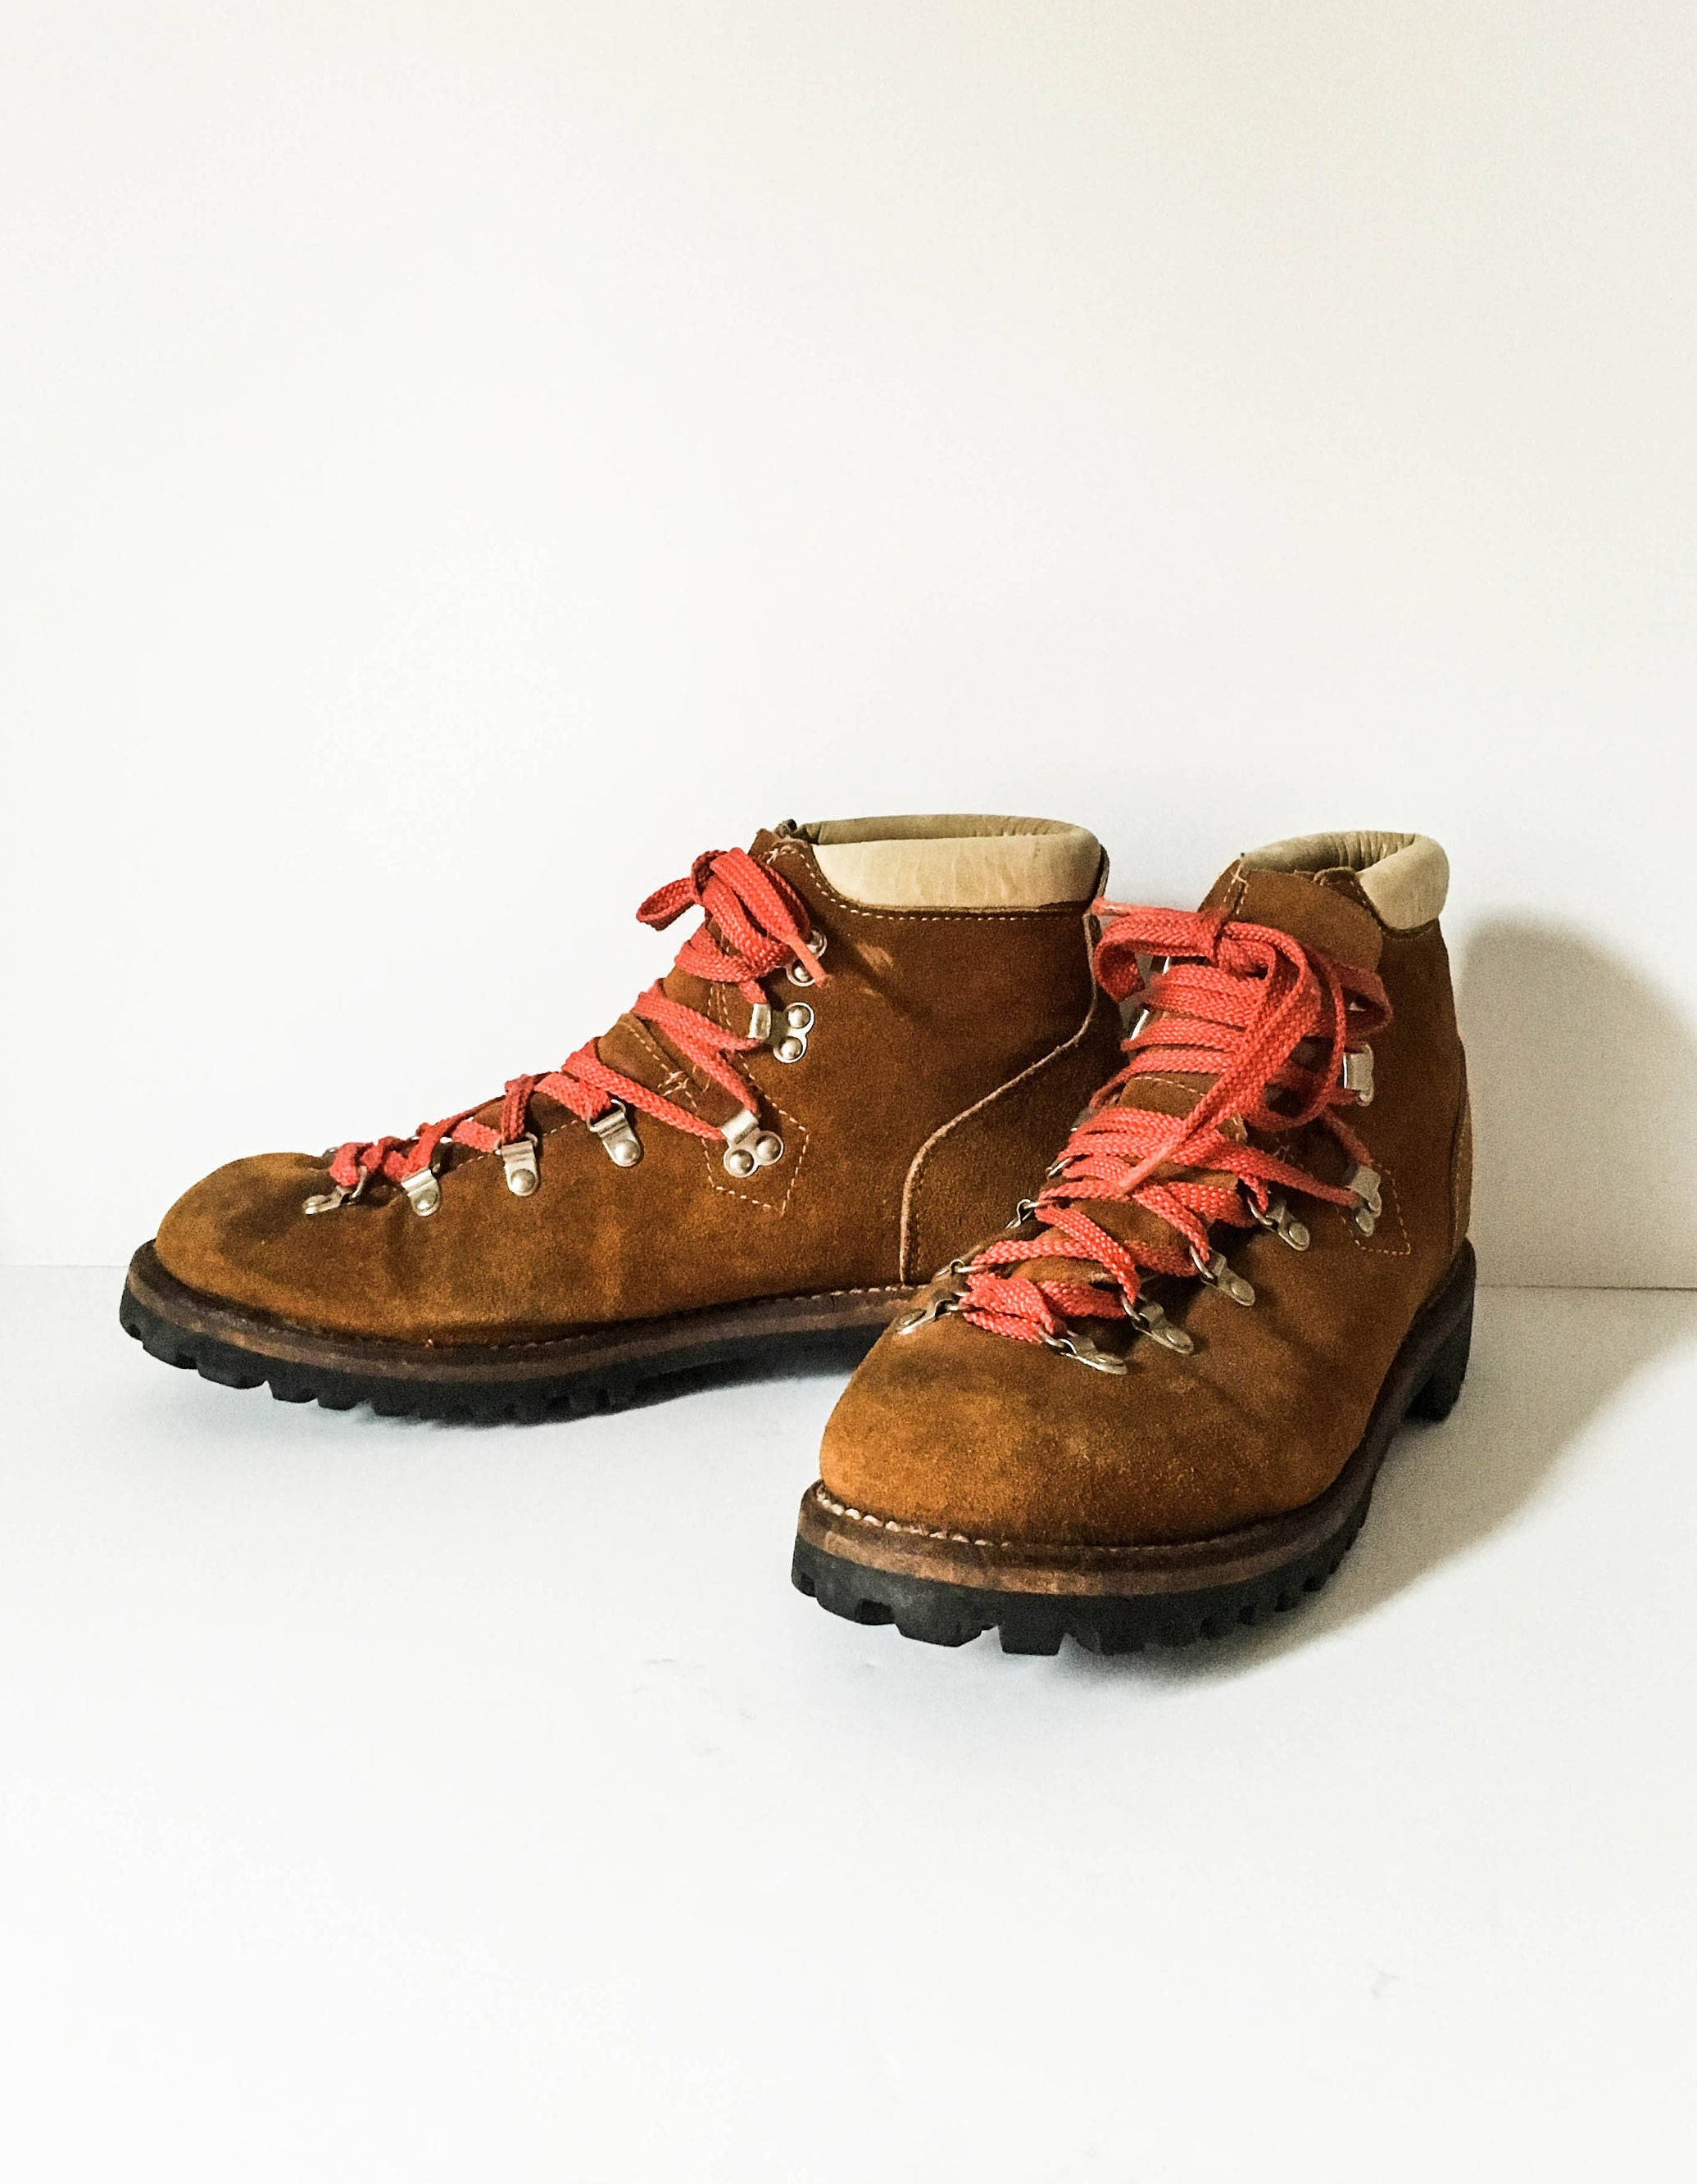 68774a4d09b Men s Sears vintage Hiking boots 11D Sears brown leather